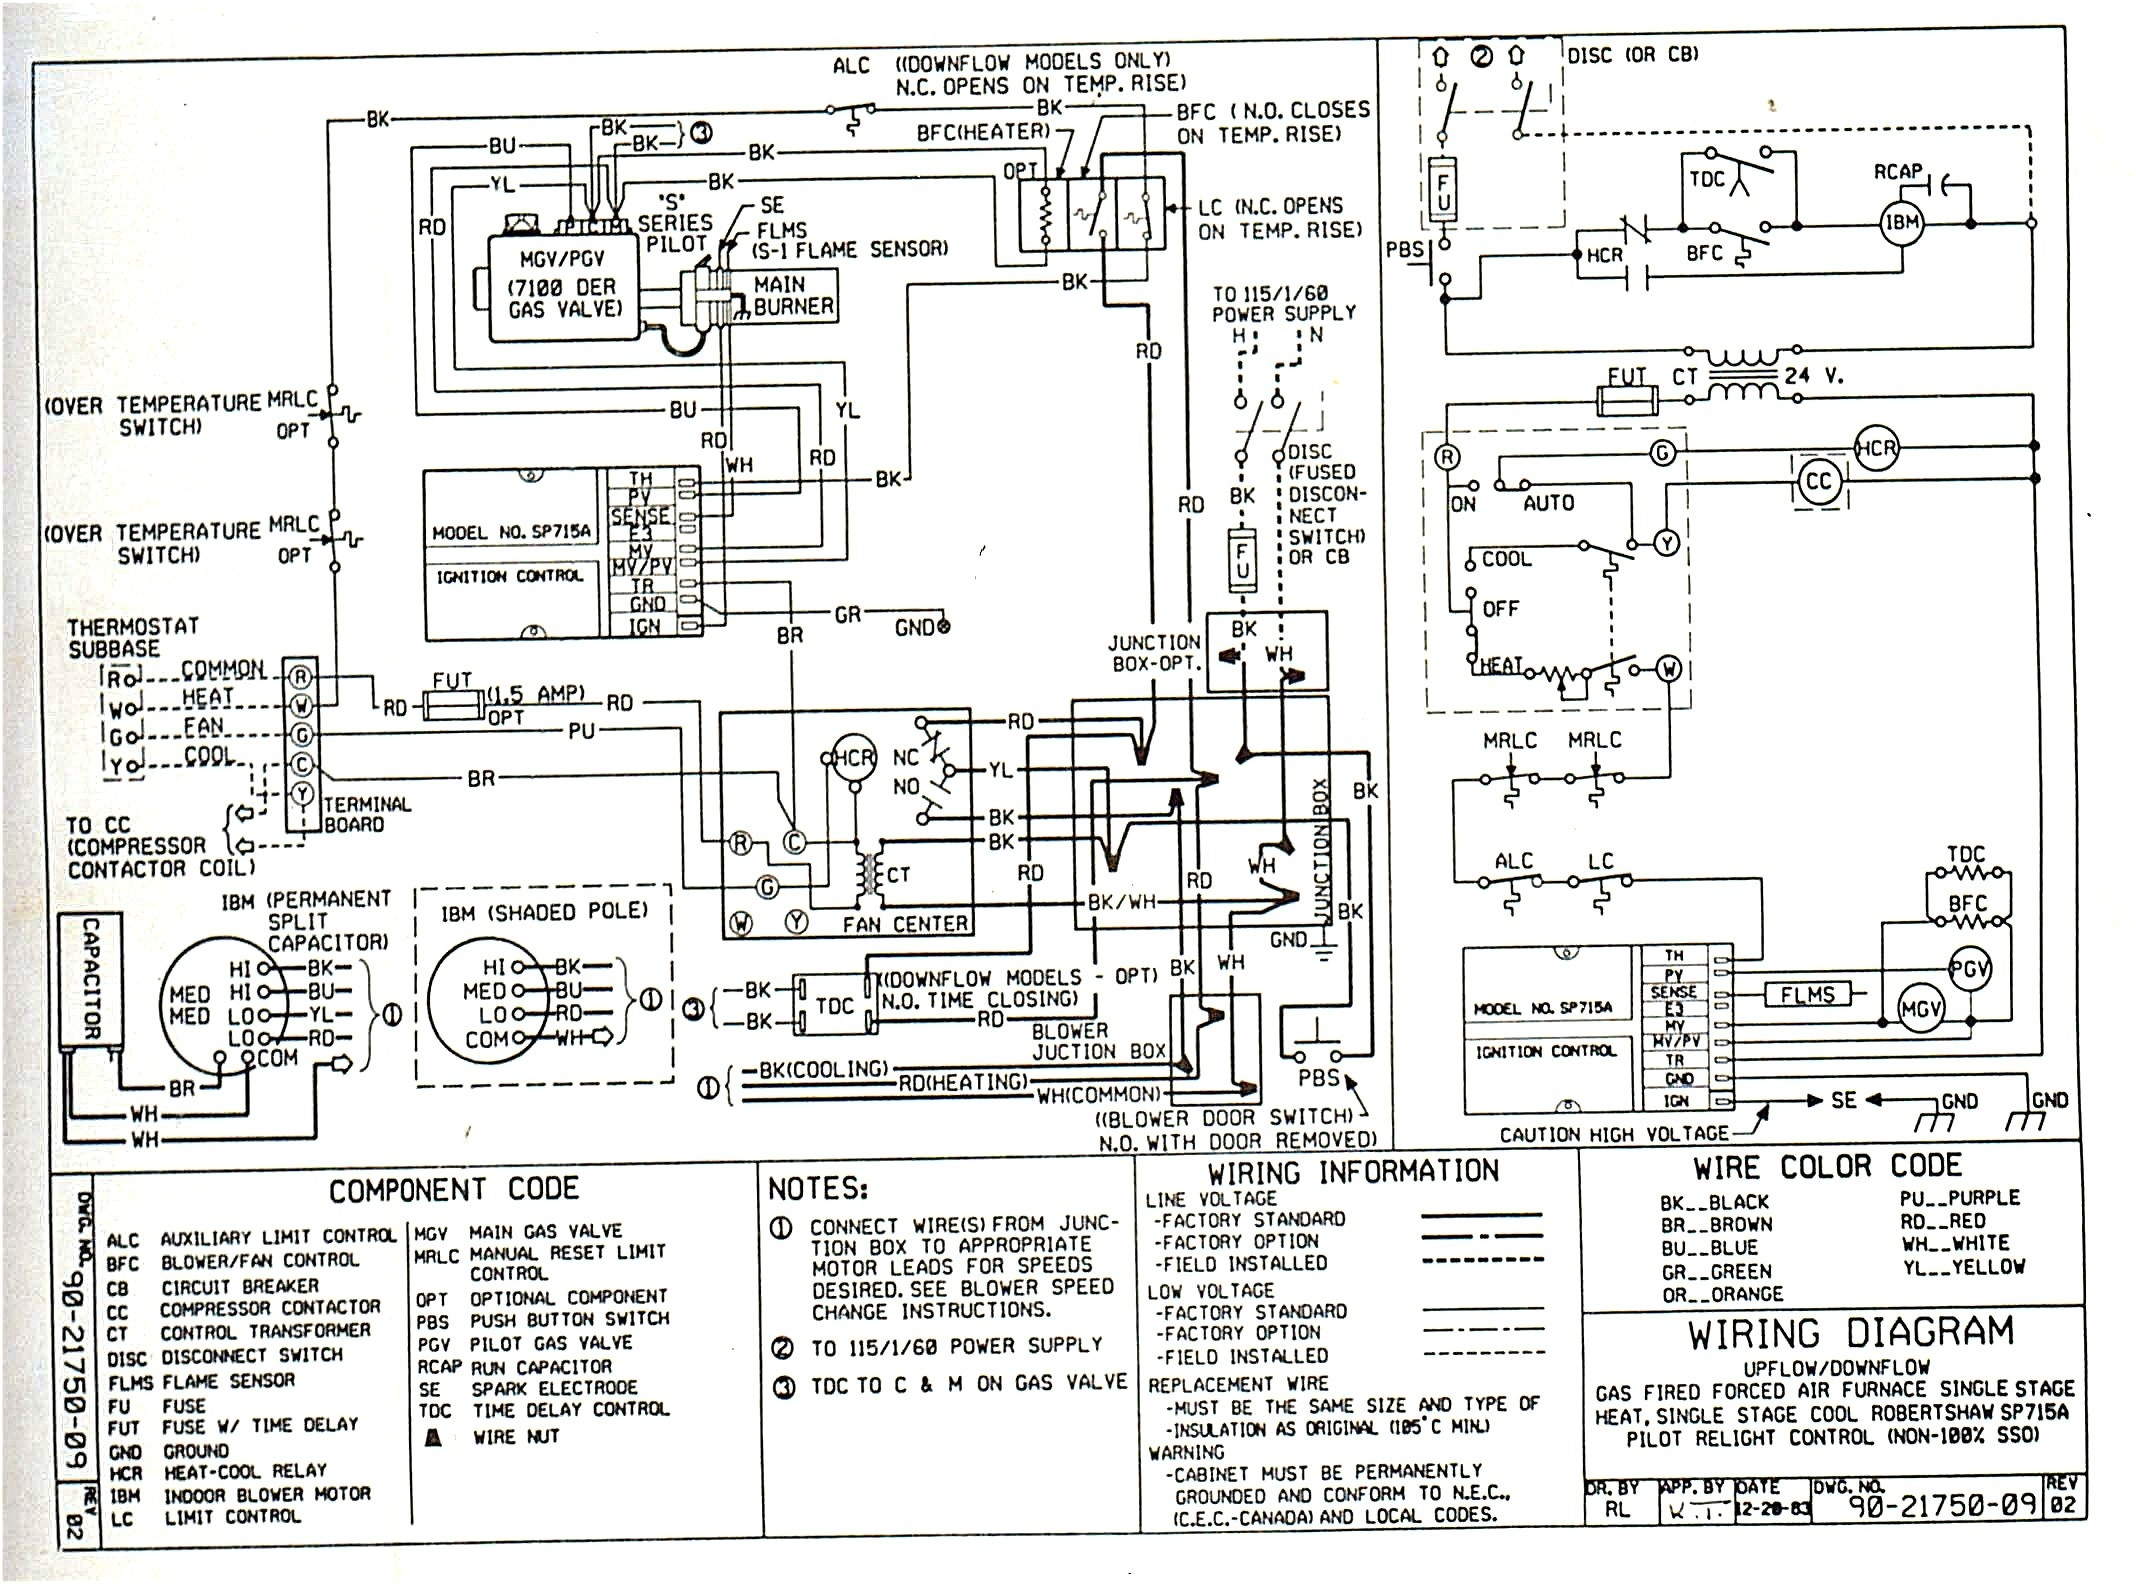 rudd gas furnace wiring diagram older tempstar heat pump wiring diagram | free wiring diagram #12